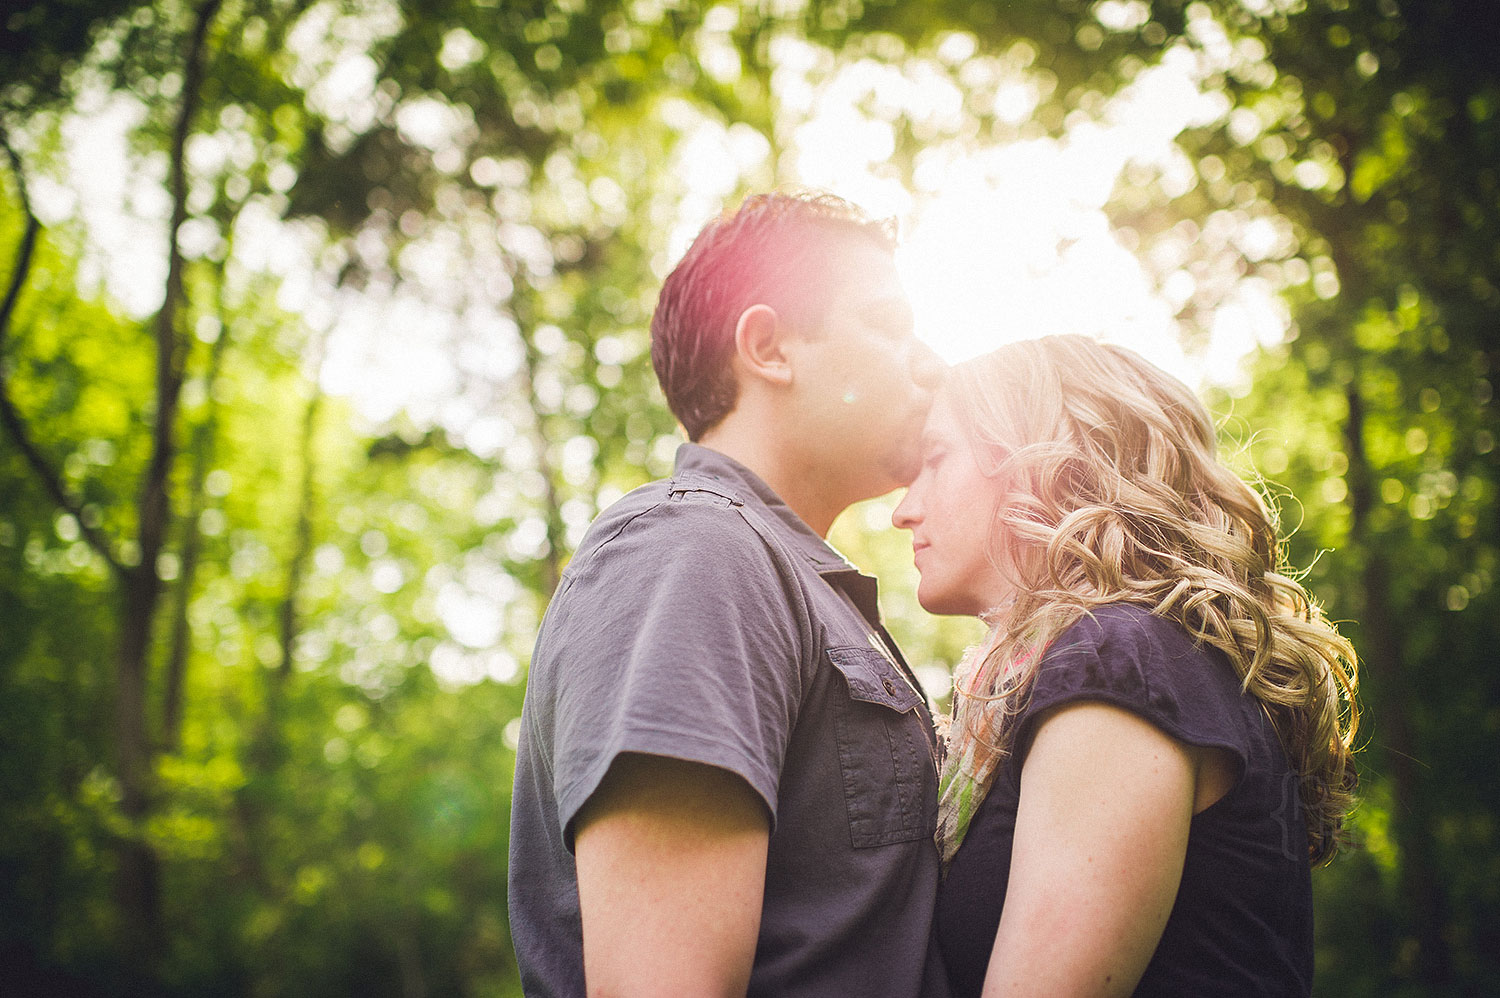 ridley-creek-state-park-engagment-session-9.jpg